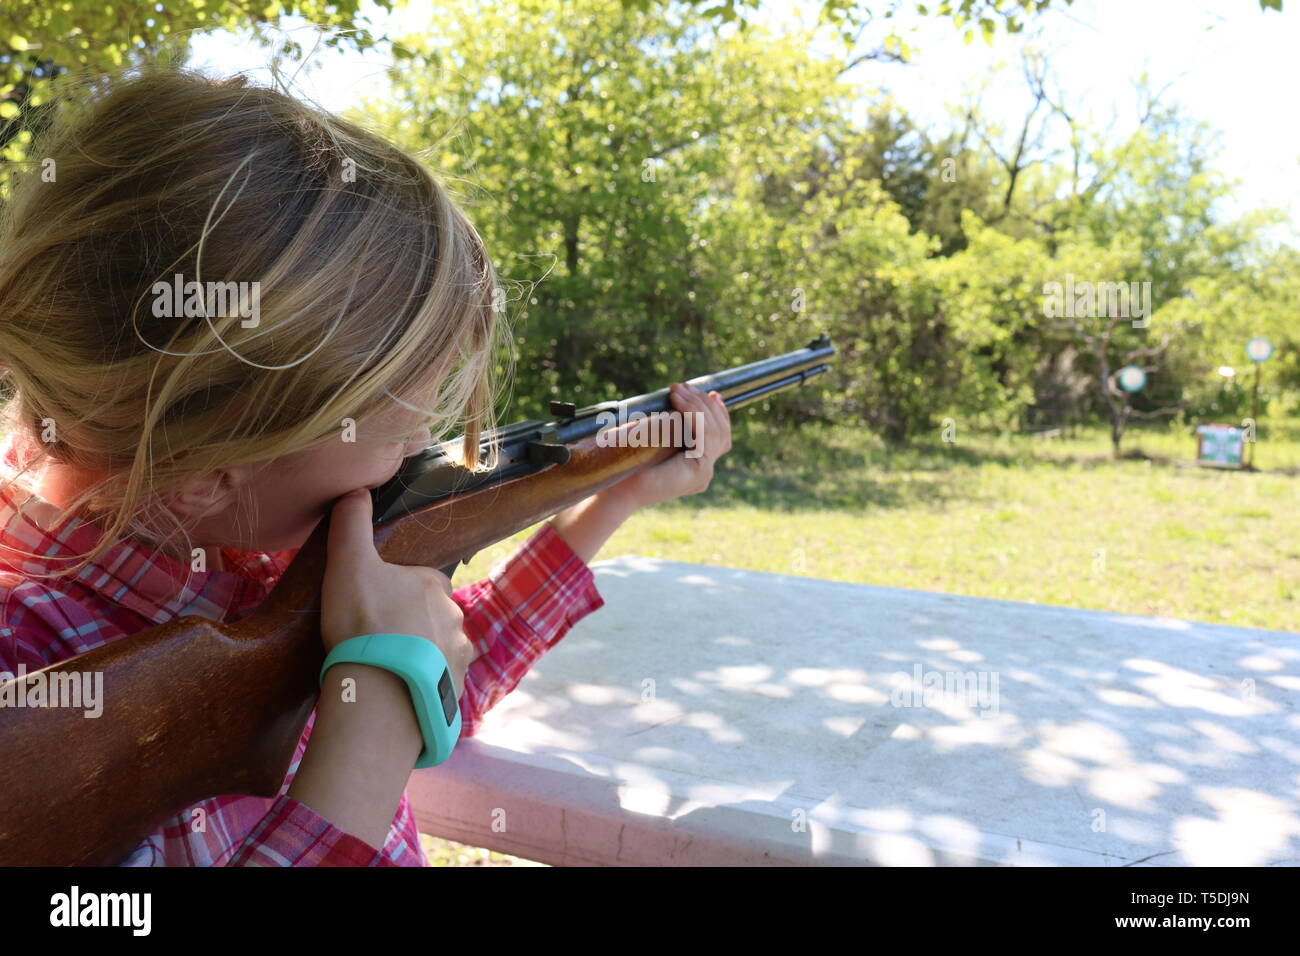 Girl with blond hair doing target practice with a 22 rifle - Stock Image